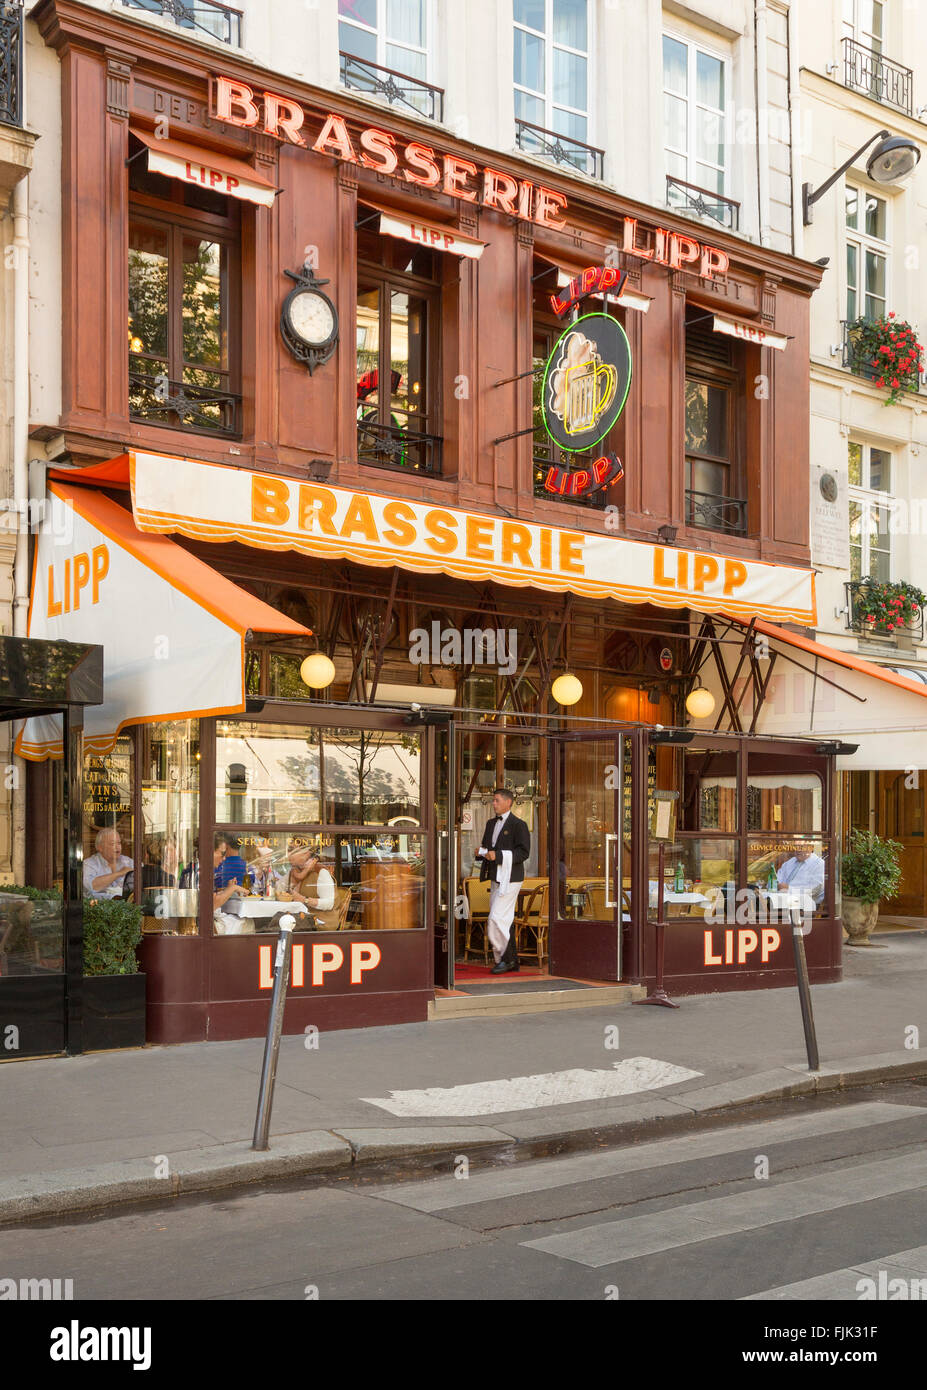 The famous Brasserie Lipp on the Boulevard St. Germain, Paris, France has been a local landmark since 1880, - Stock Image